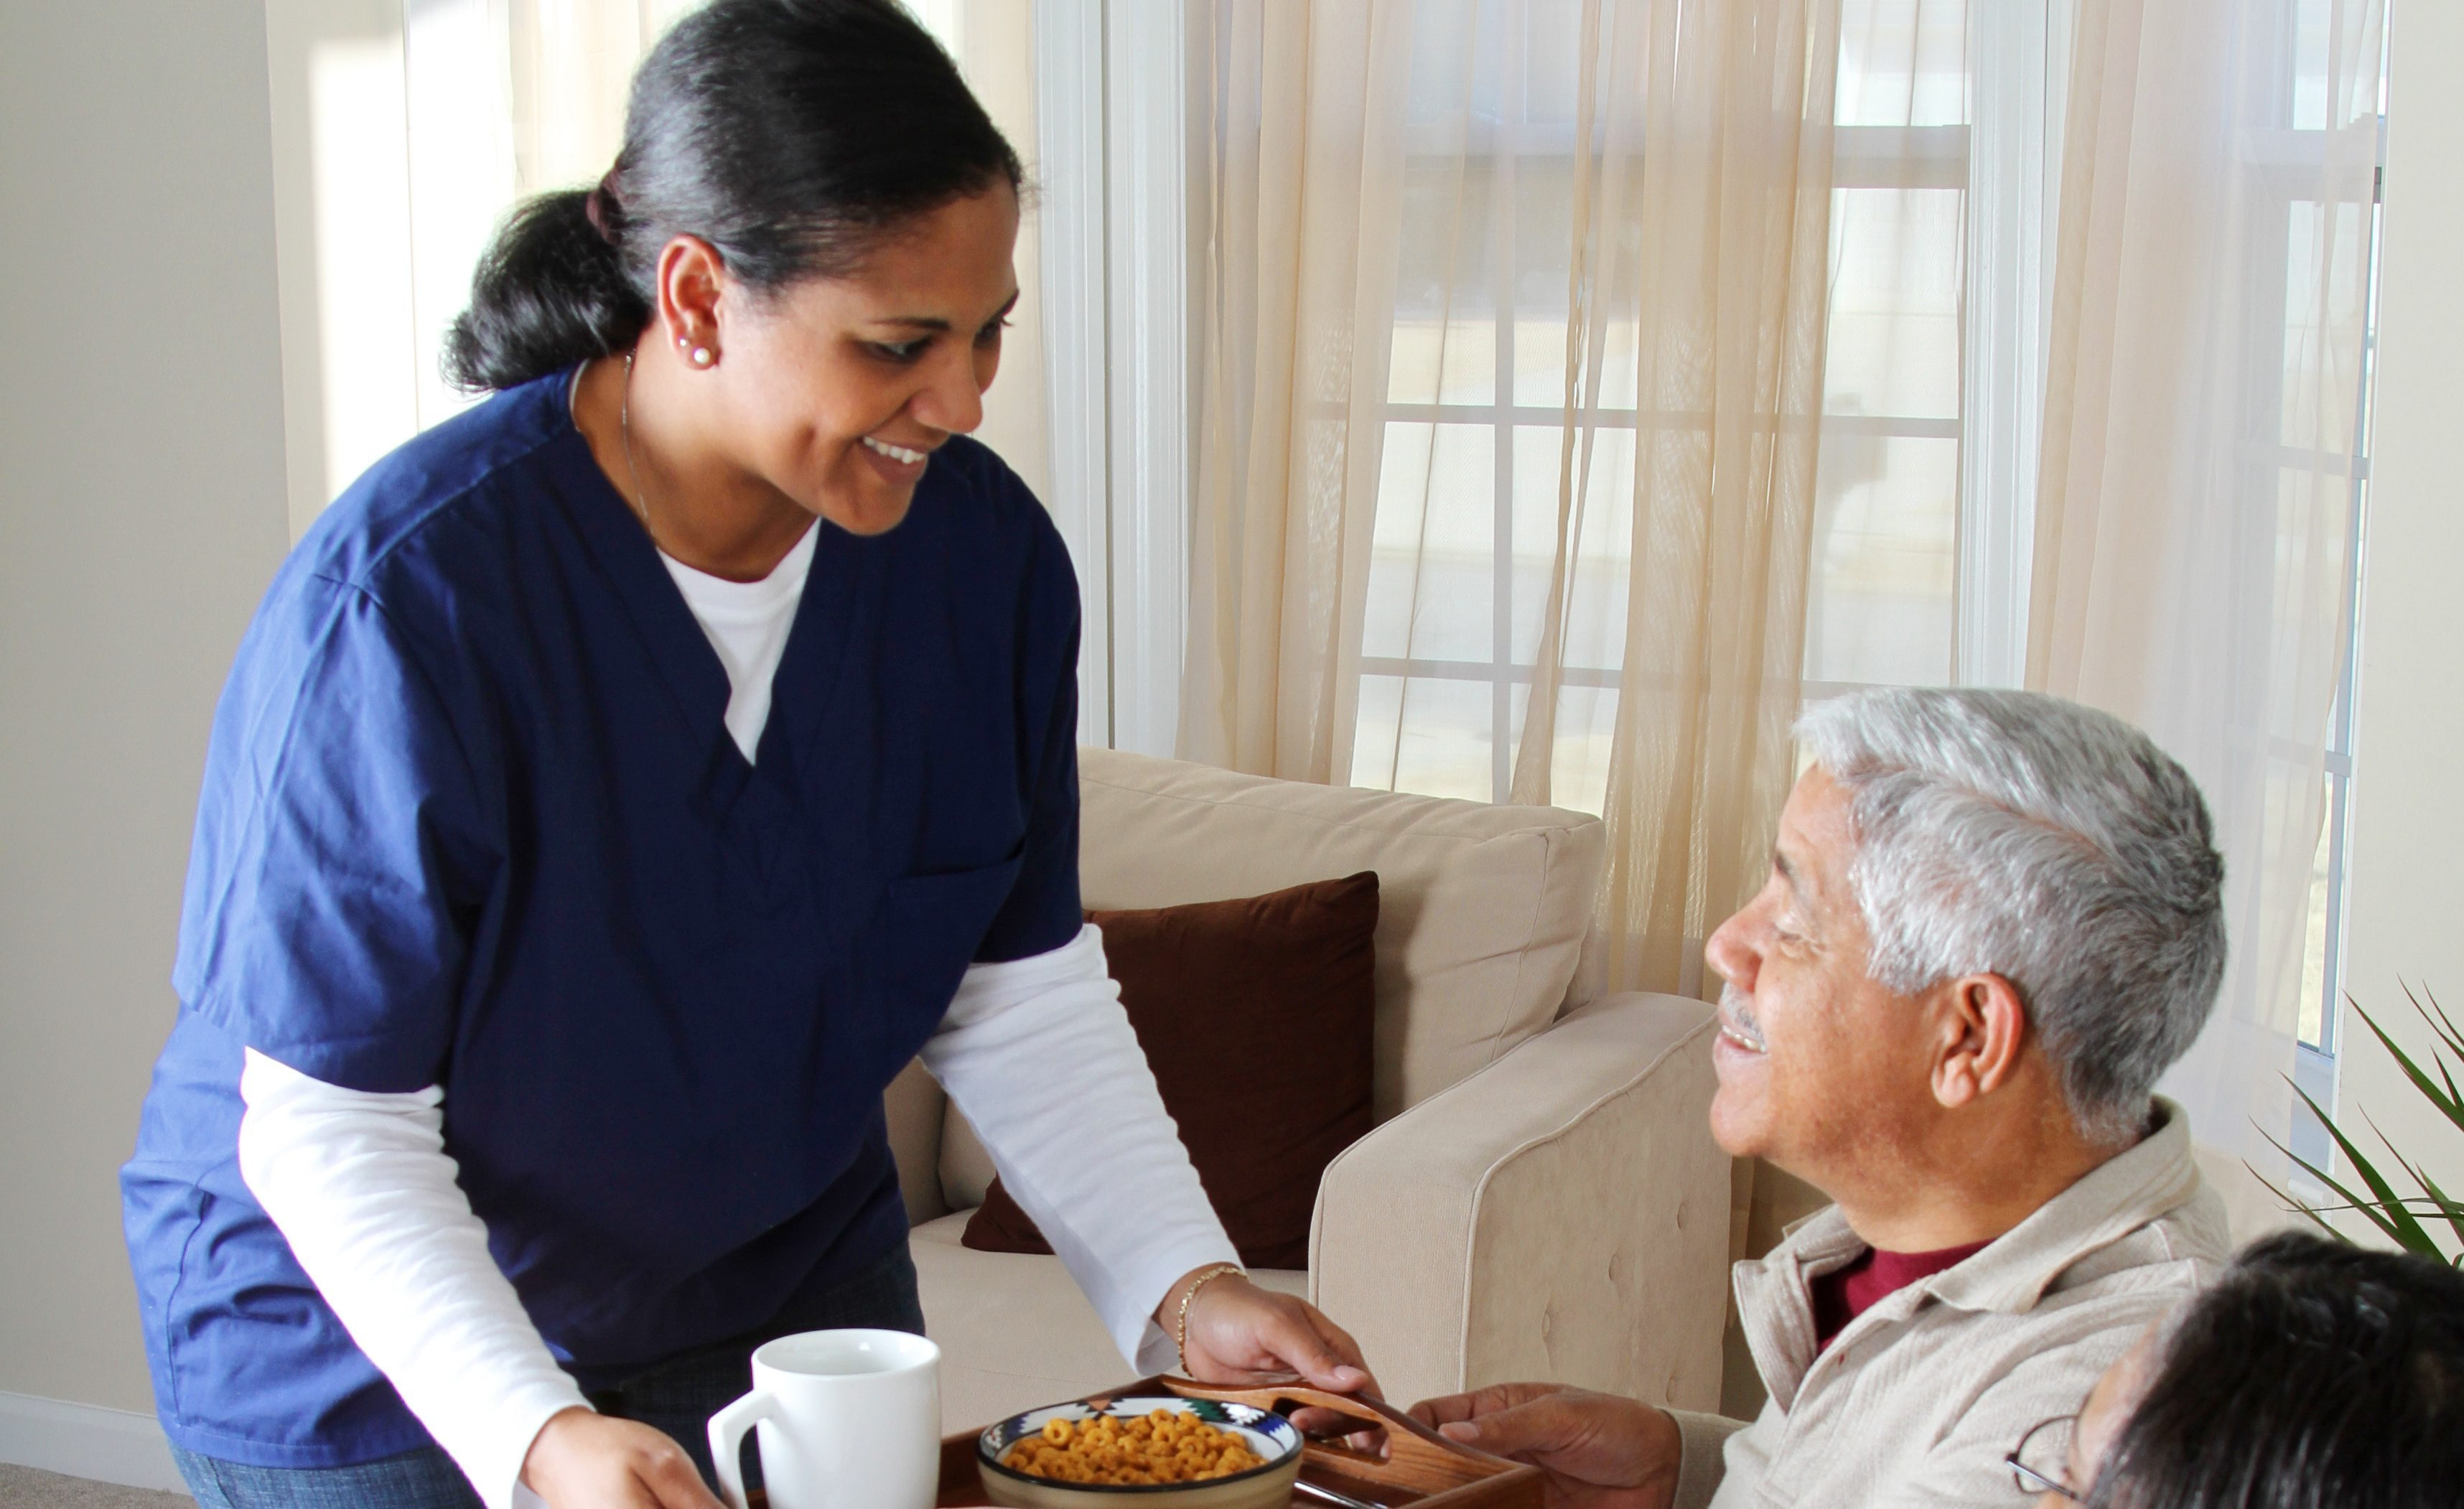 Care Workers Your Rights